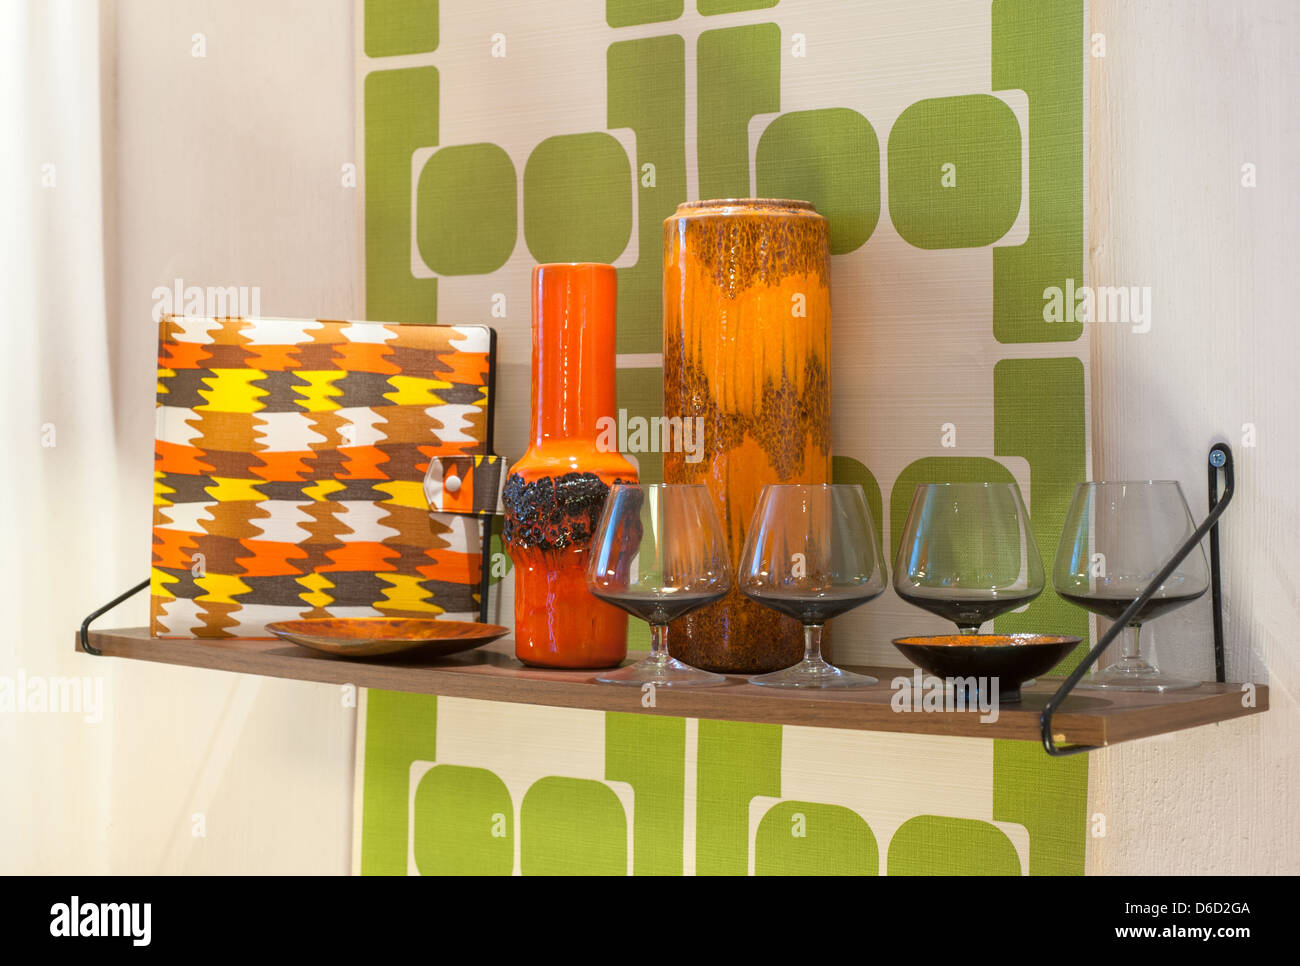 Berlin, Germany, Retro Furnishings in the style of the late 60s and 70s - Stock Image